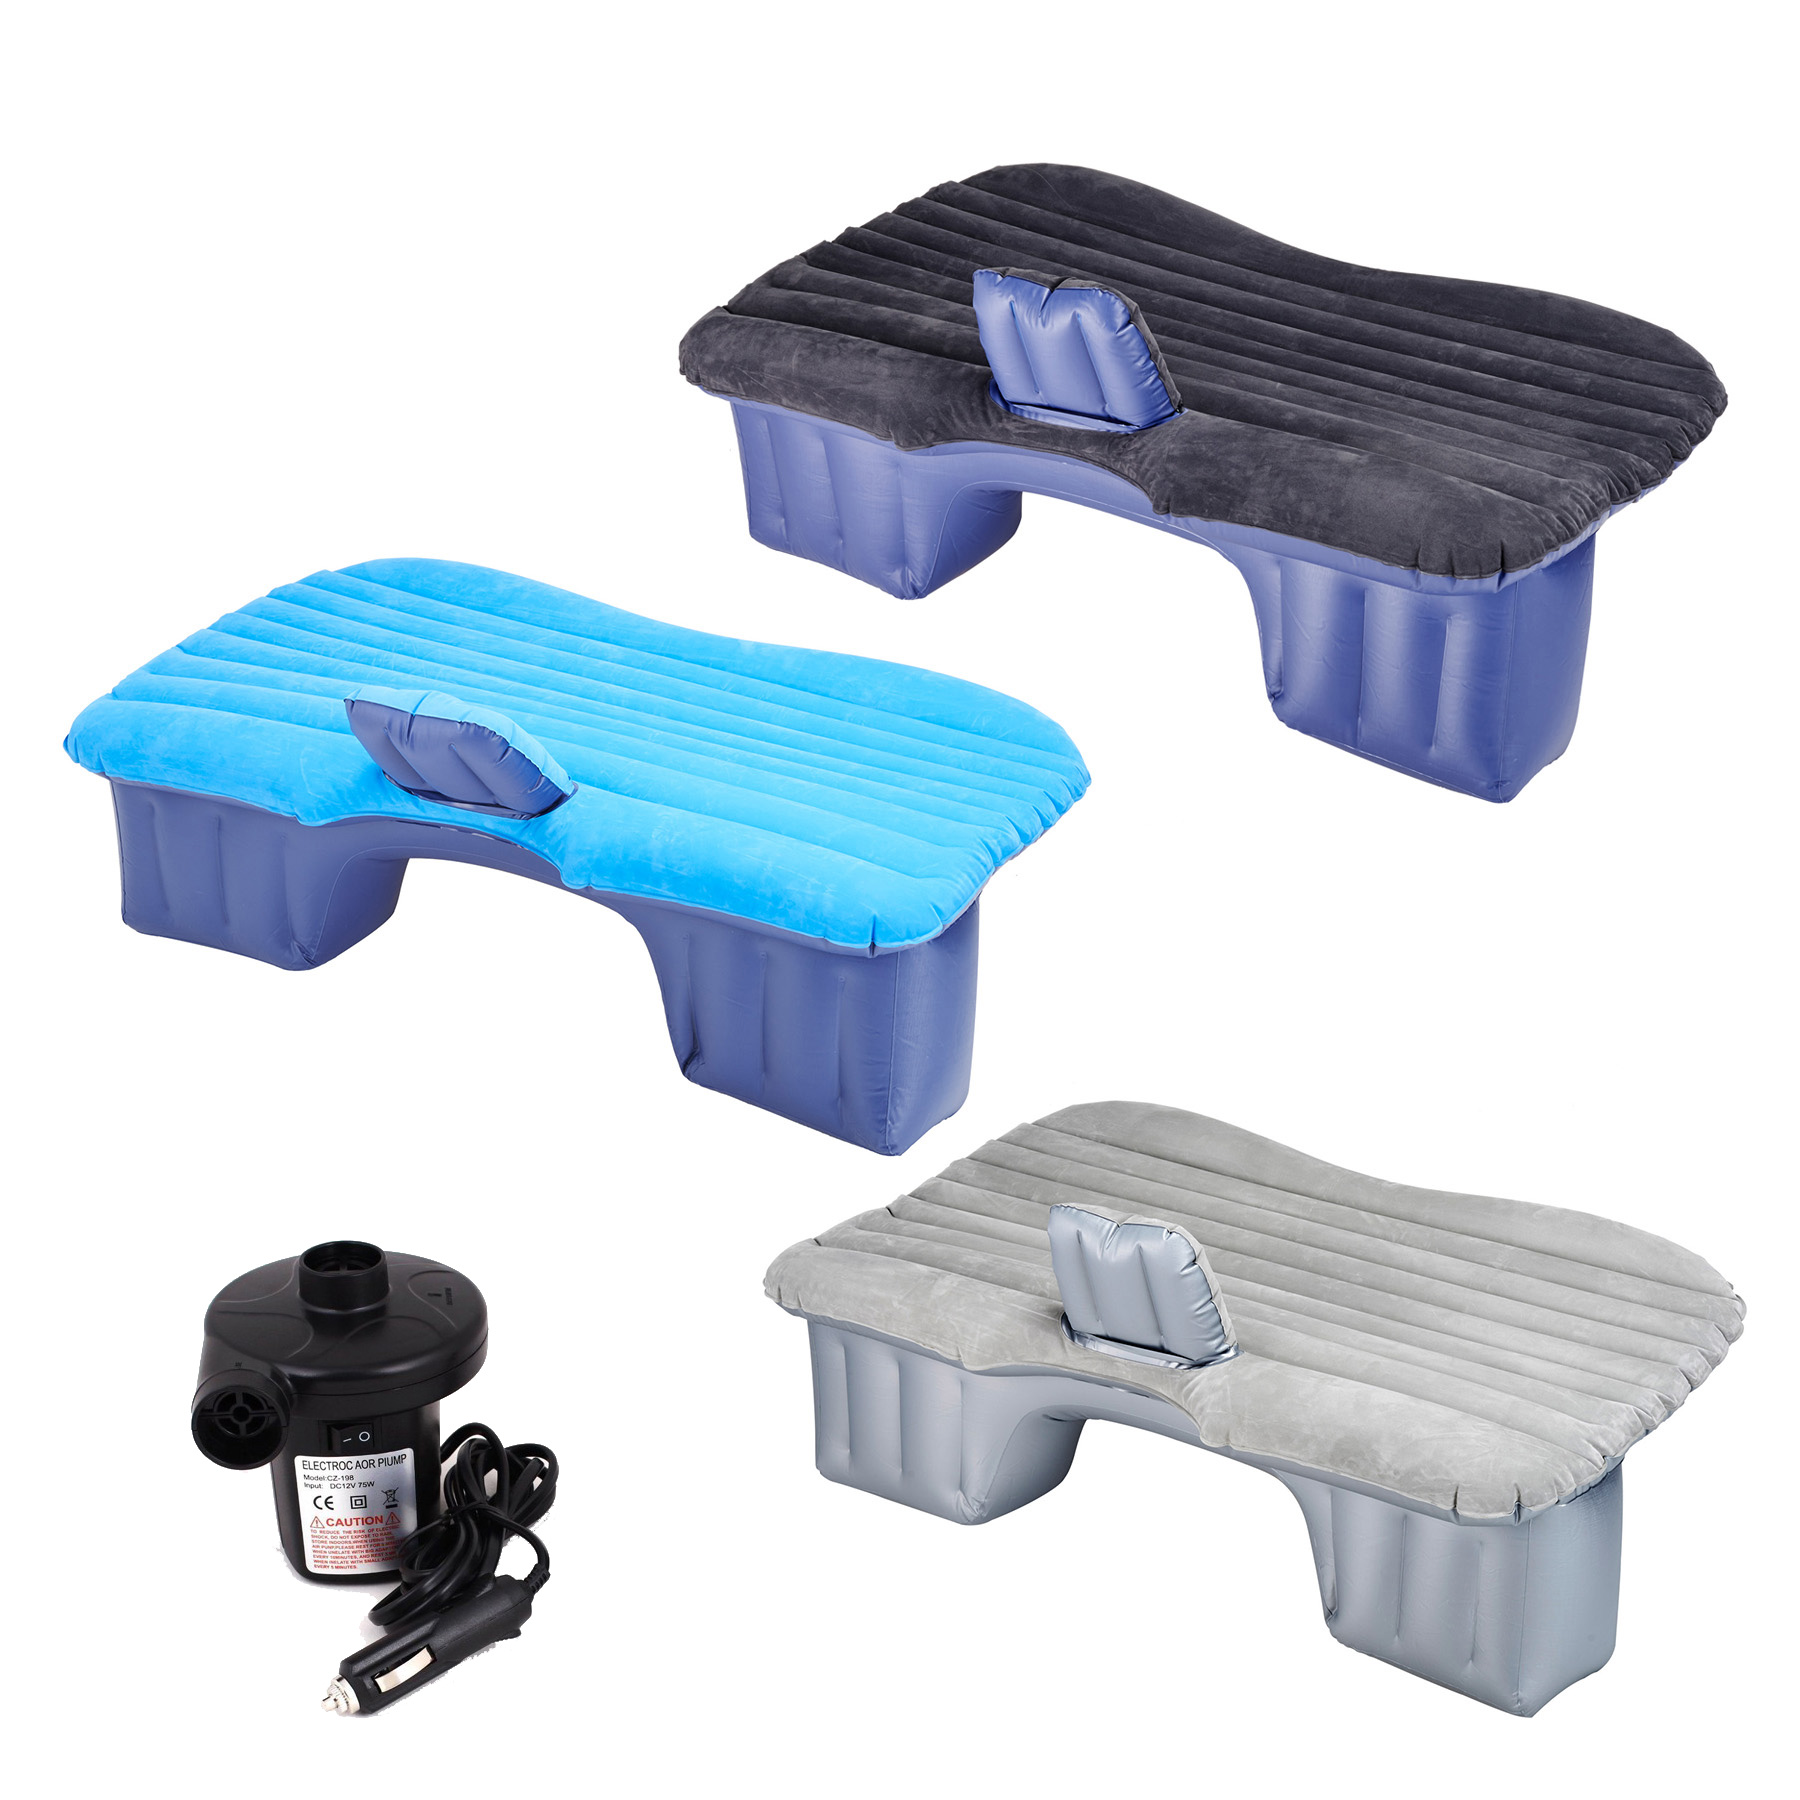 Backseat Inflatable Bed Car Air Bed Inflatable Mattress Back Seat Cushion 2 Pillow 330 Lbs